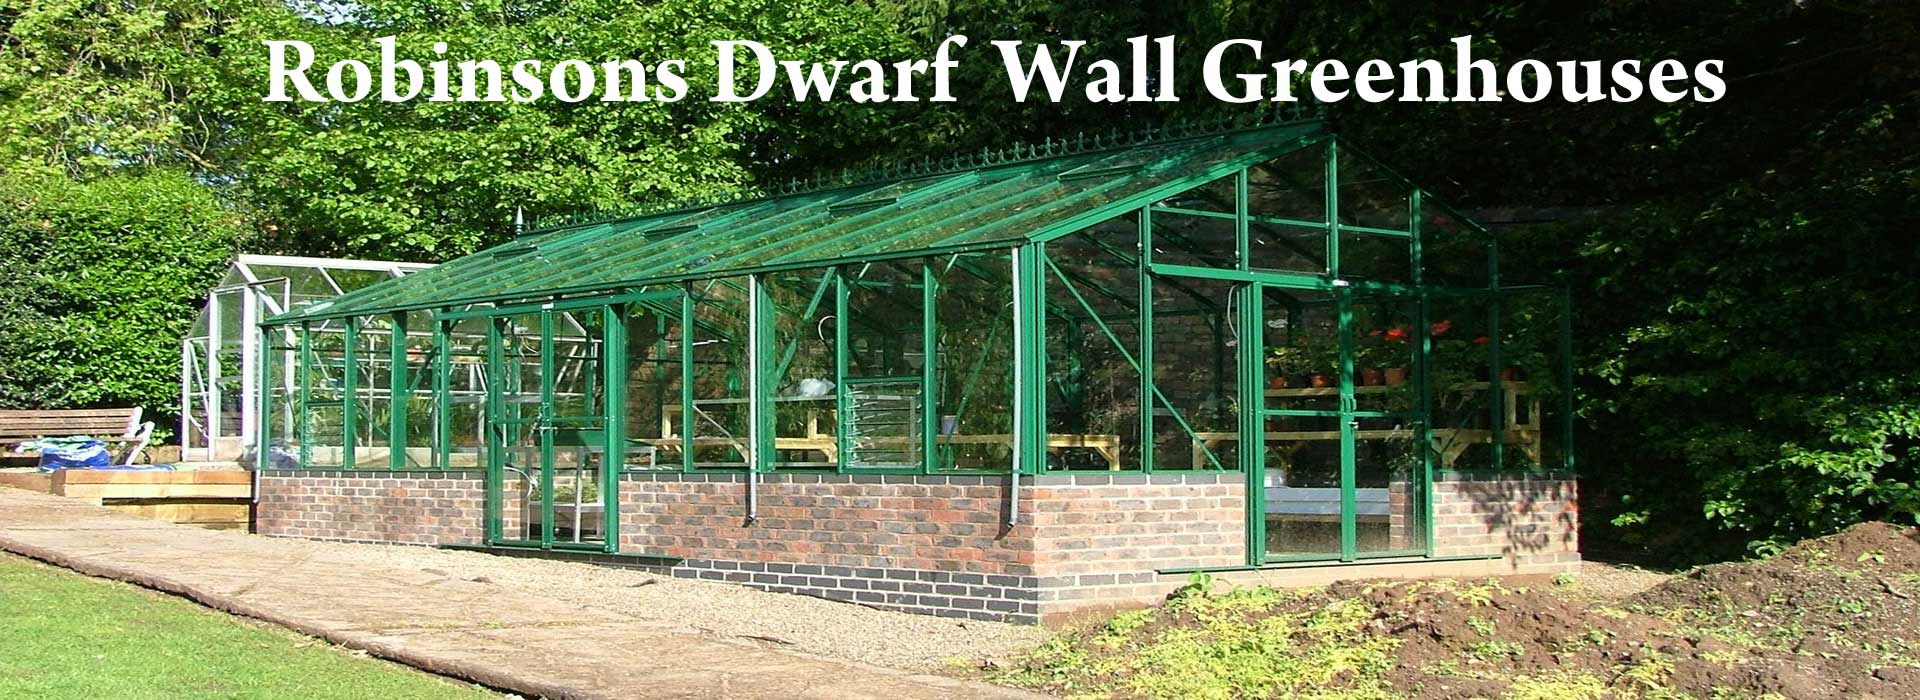 Robinsons Dwarft Wall Greenhouses